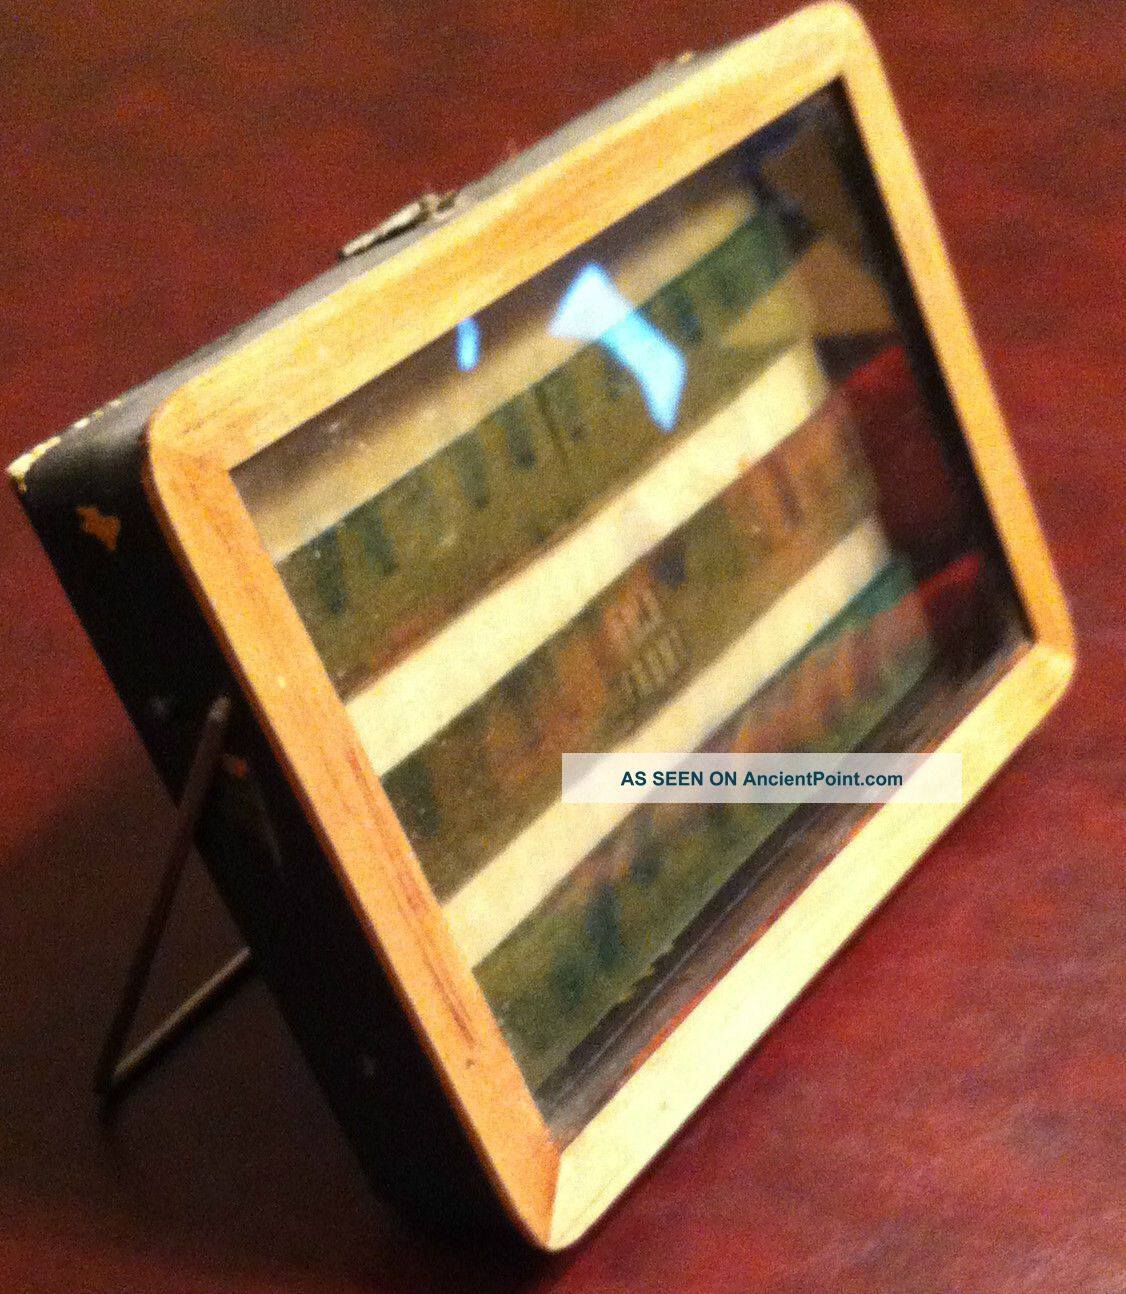 Antique Old Sadler ' S Tie Clasps Small Counter Top Store Display Case Jewelry Display Cases photo